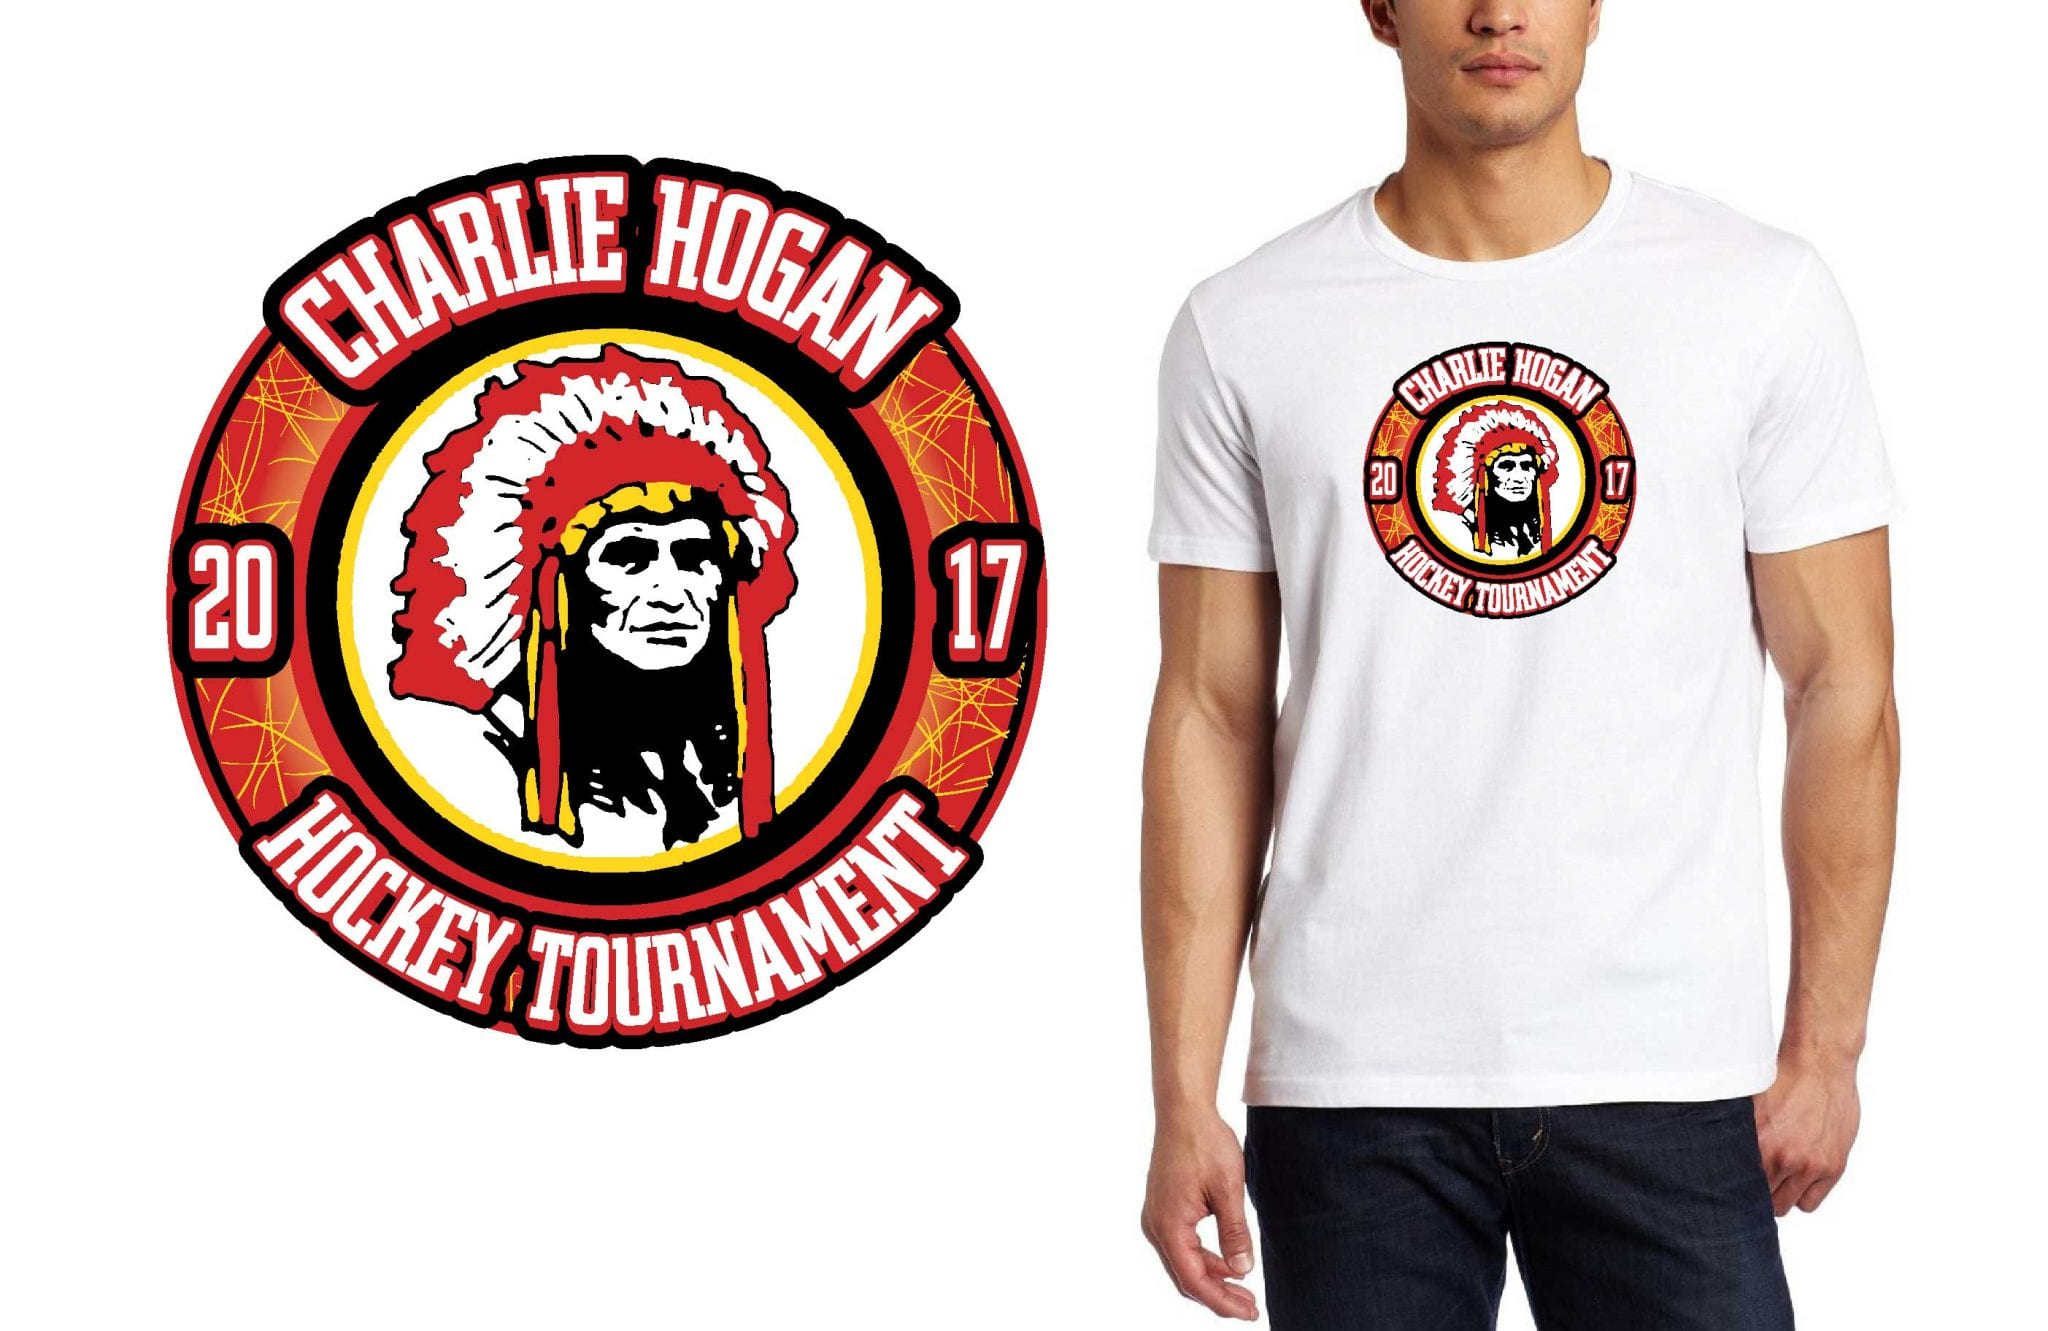 HOCKEY LOGO for Charlie-Hogan-Memorial-Tournament T-SHIRT UrArtStudio